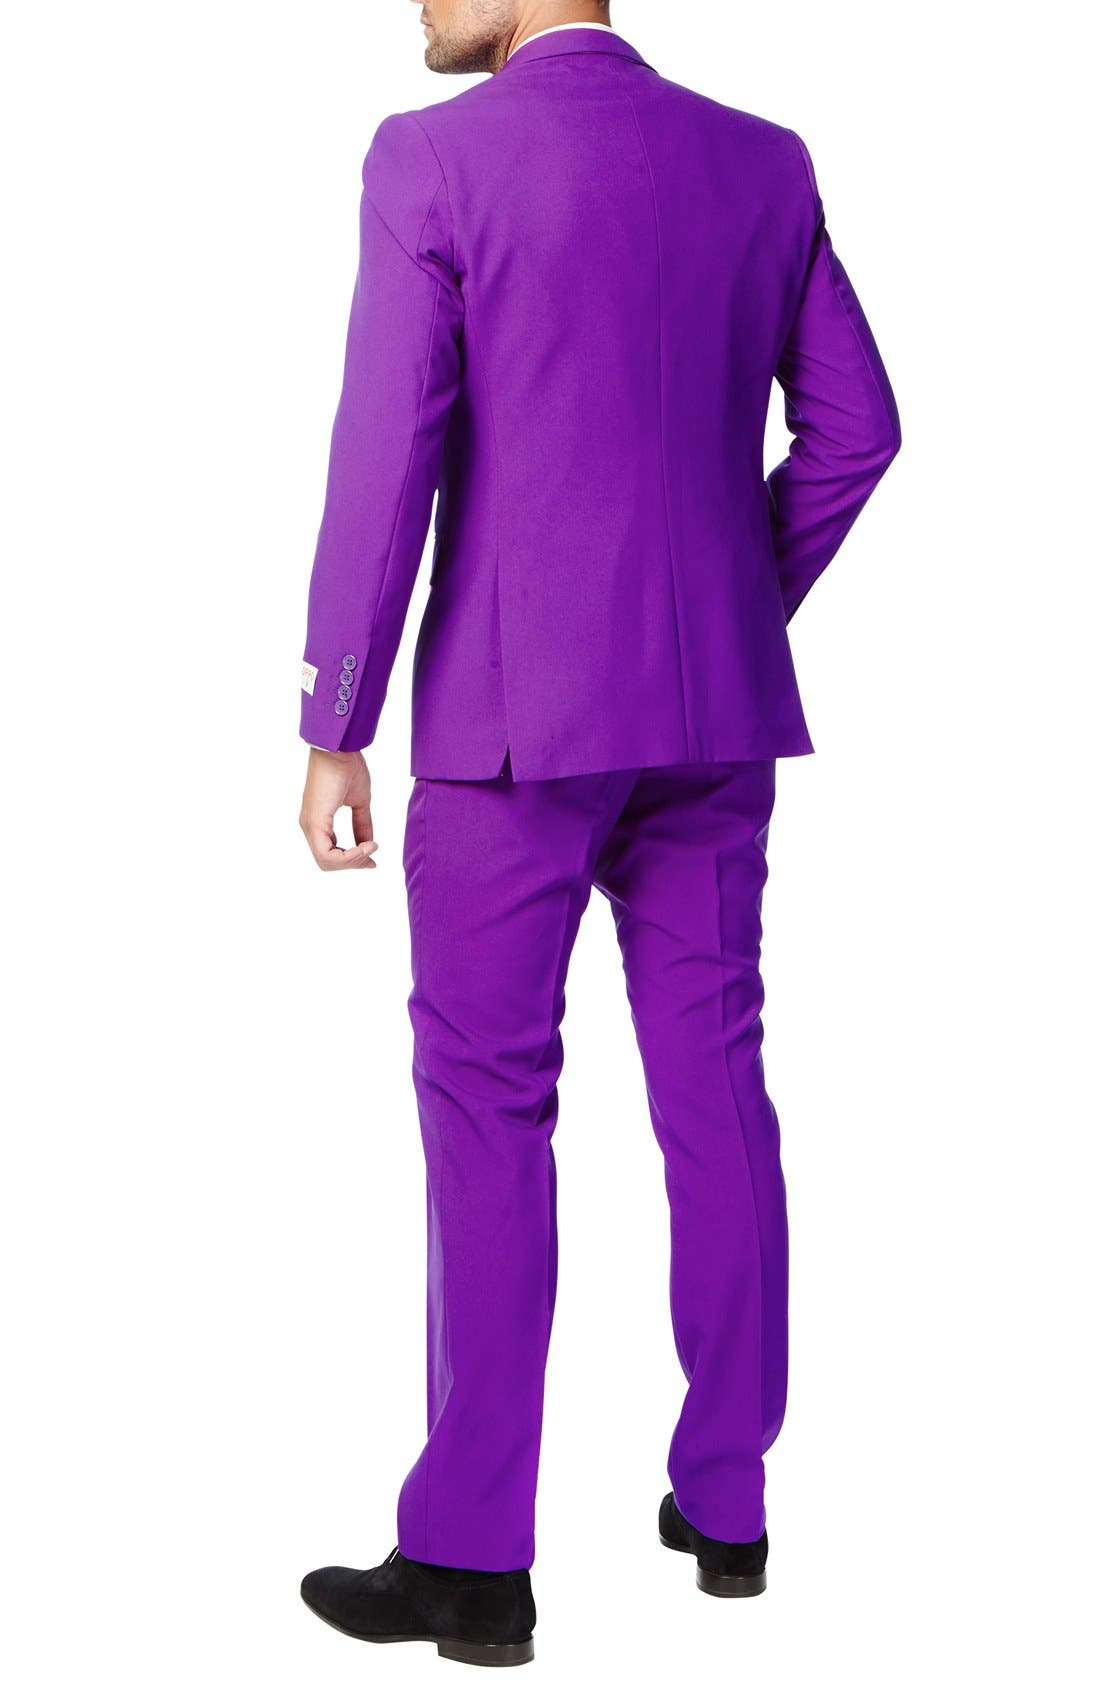 Alternate Image 2  - OppoSuits 'Purple Prince' Trim Fit Two-Piece Suit with Tie